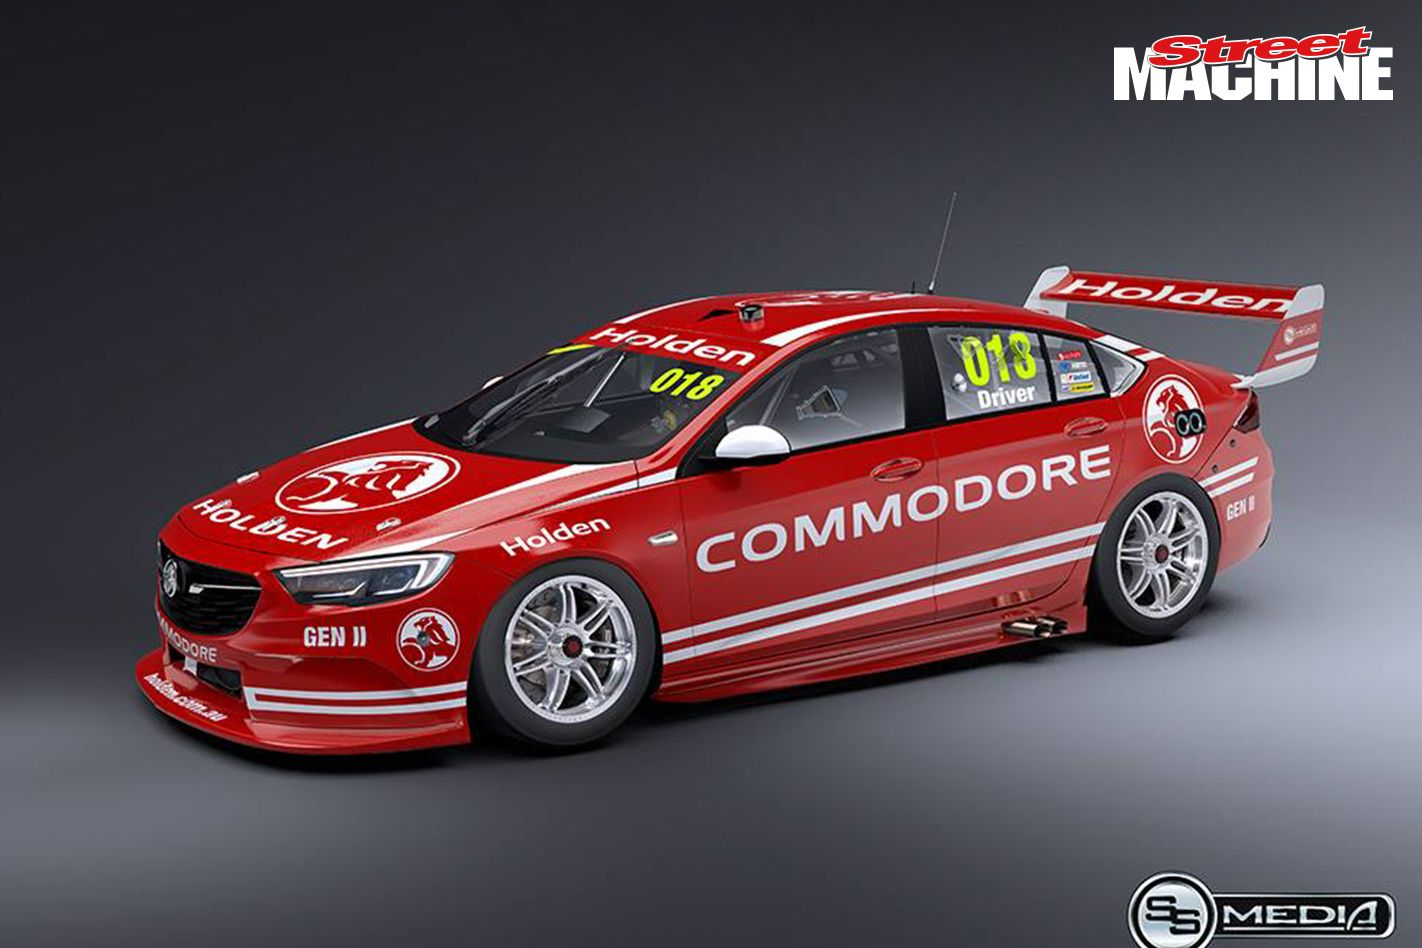 A look at what Holden's 2018 Commodore Supercars race car could look like. Could it really be V6-powered?